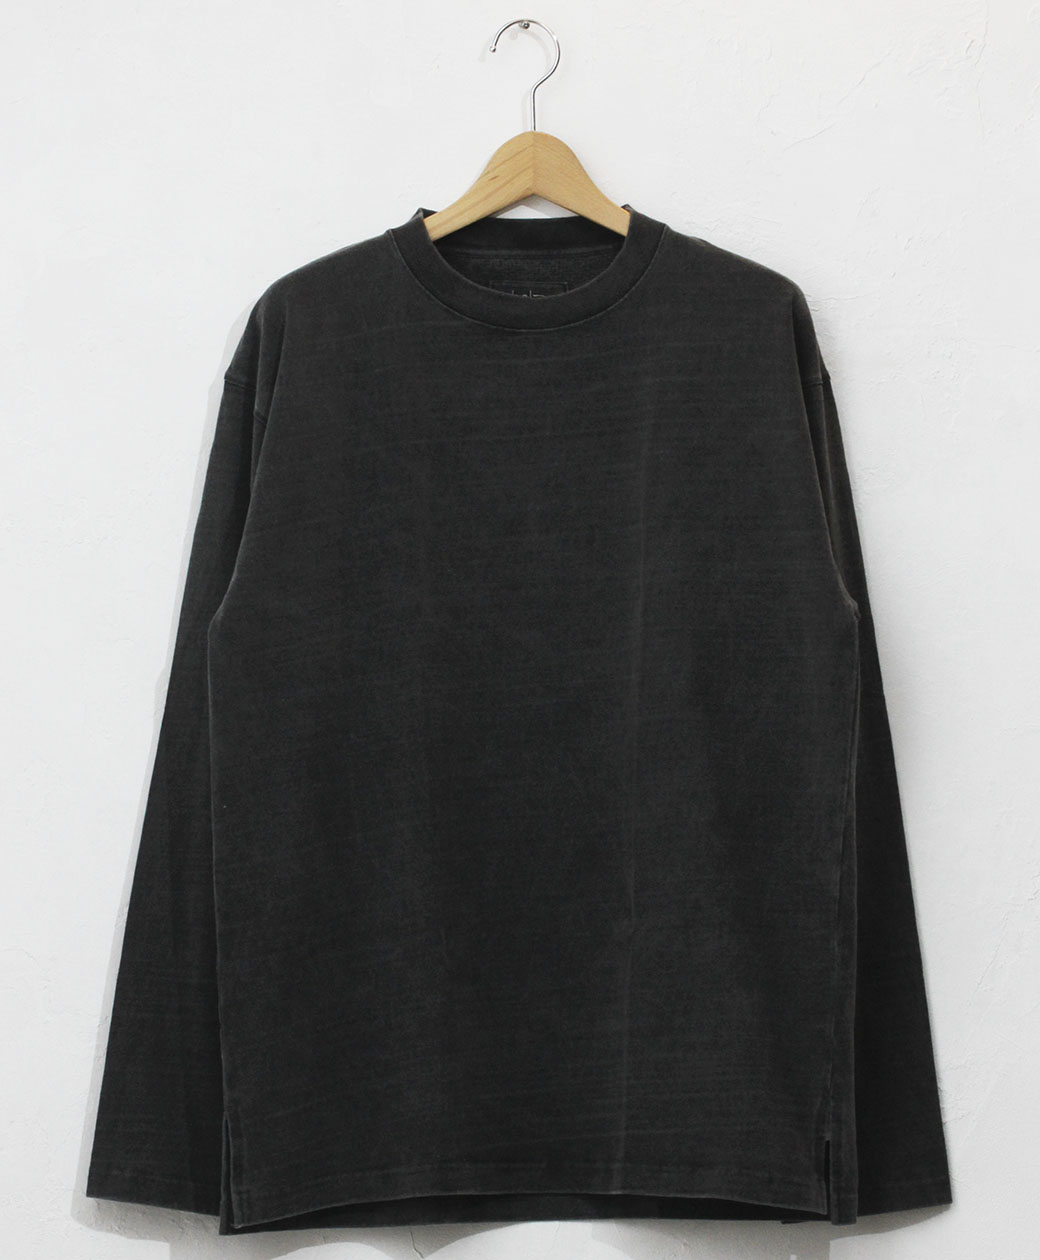 hobo ARTISAN L/S CREW NECK TEE COTTON HEAVYWEIGHT JERSEY CHARCOAL DYED